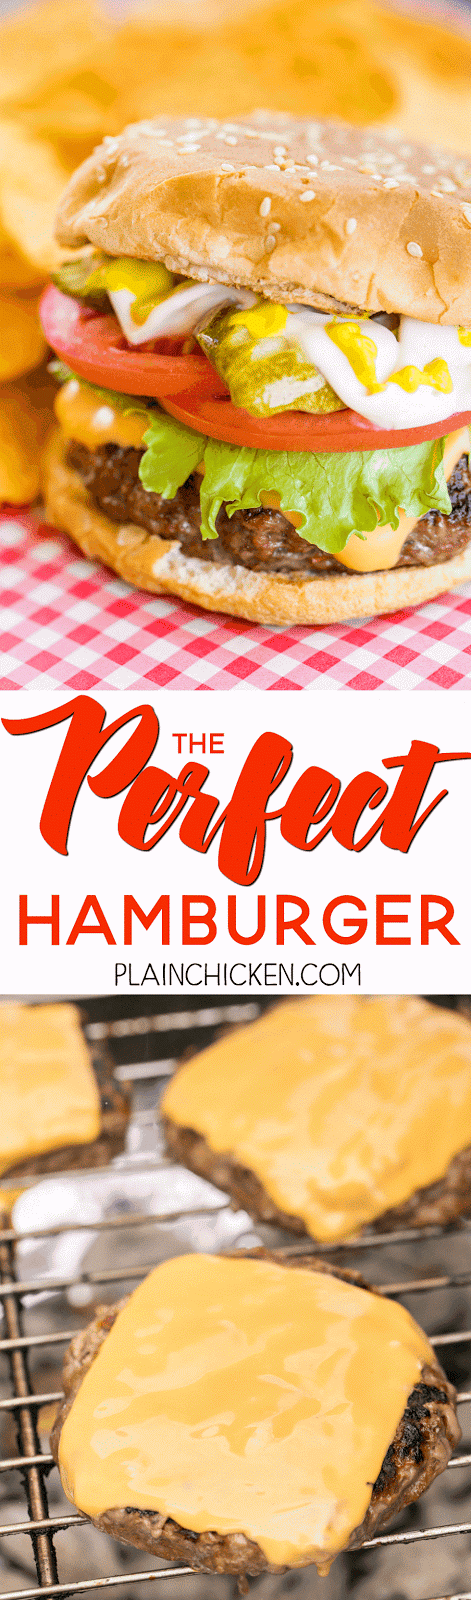 The Perfect Hamburger - look no further! The recipe for the Perfect Hamburger is right here!! We ate these 3 days in one week! SO good!!! Hamburger, egg, chili sauce, horseradish, onion, Worcestershire sauce. Top with your favorite toppings - cheese, lettuce, tomatoes, pickles. Great for a crowd. Can make patties ahead of time and freezer for later. Simply THE BEST!